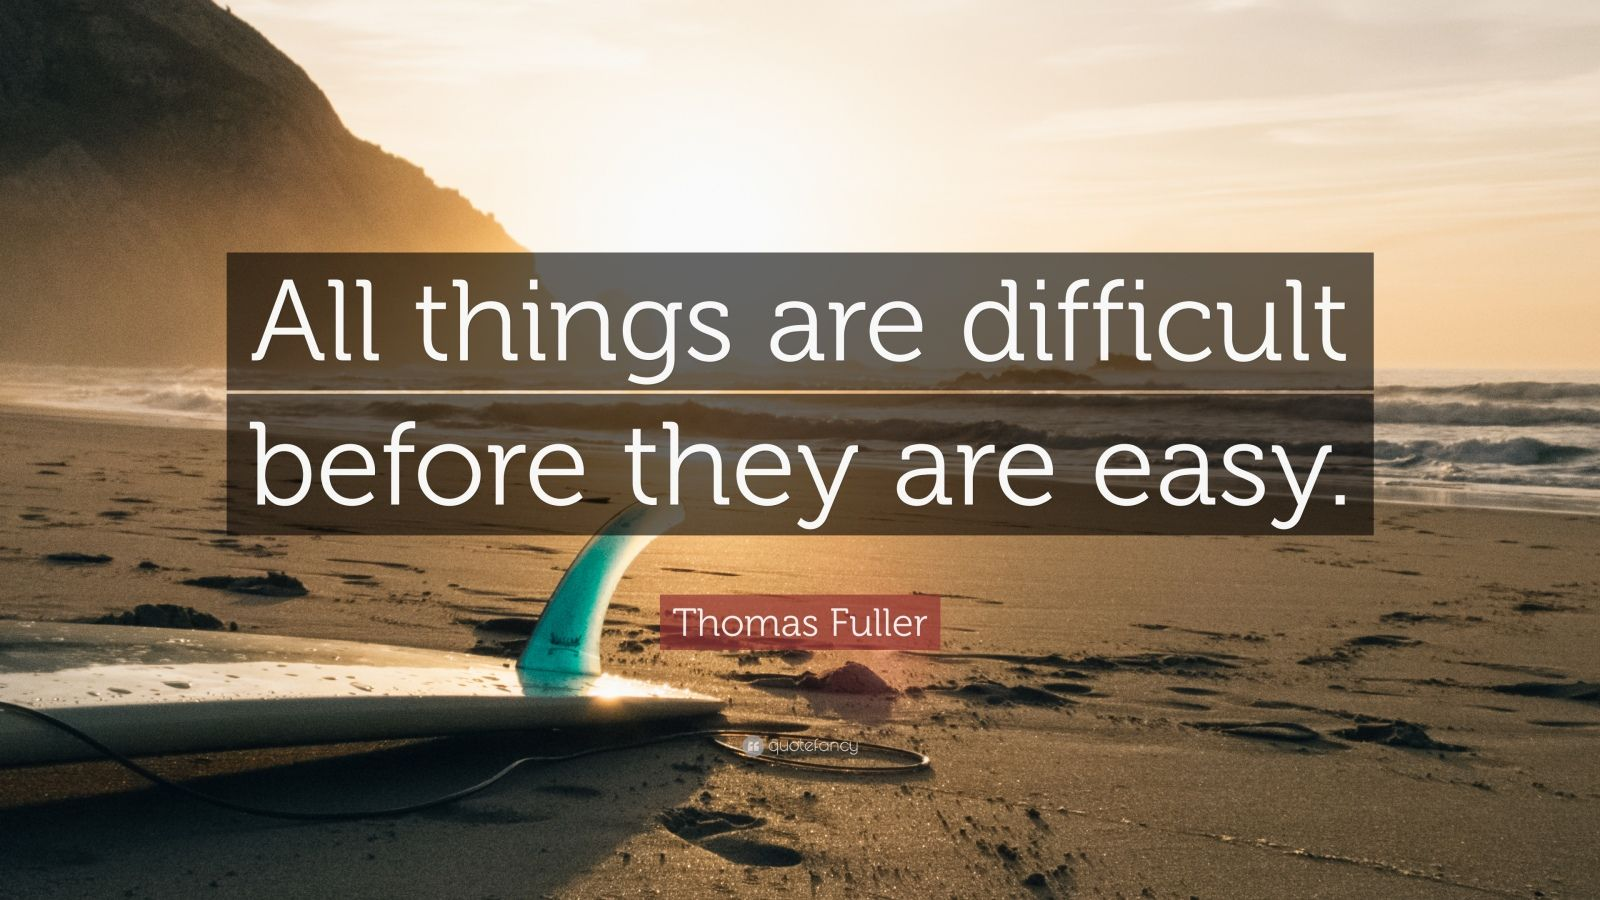 Casey Neistat Quotes Wallpaper Thomas Fuller Quote All Things Are Difficult Before They